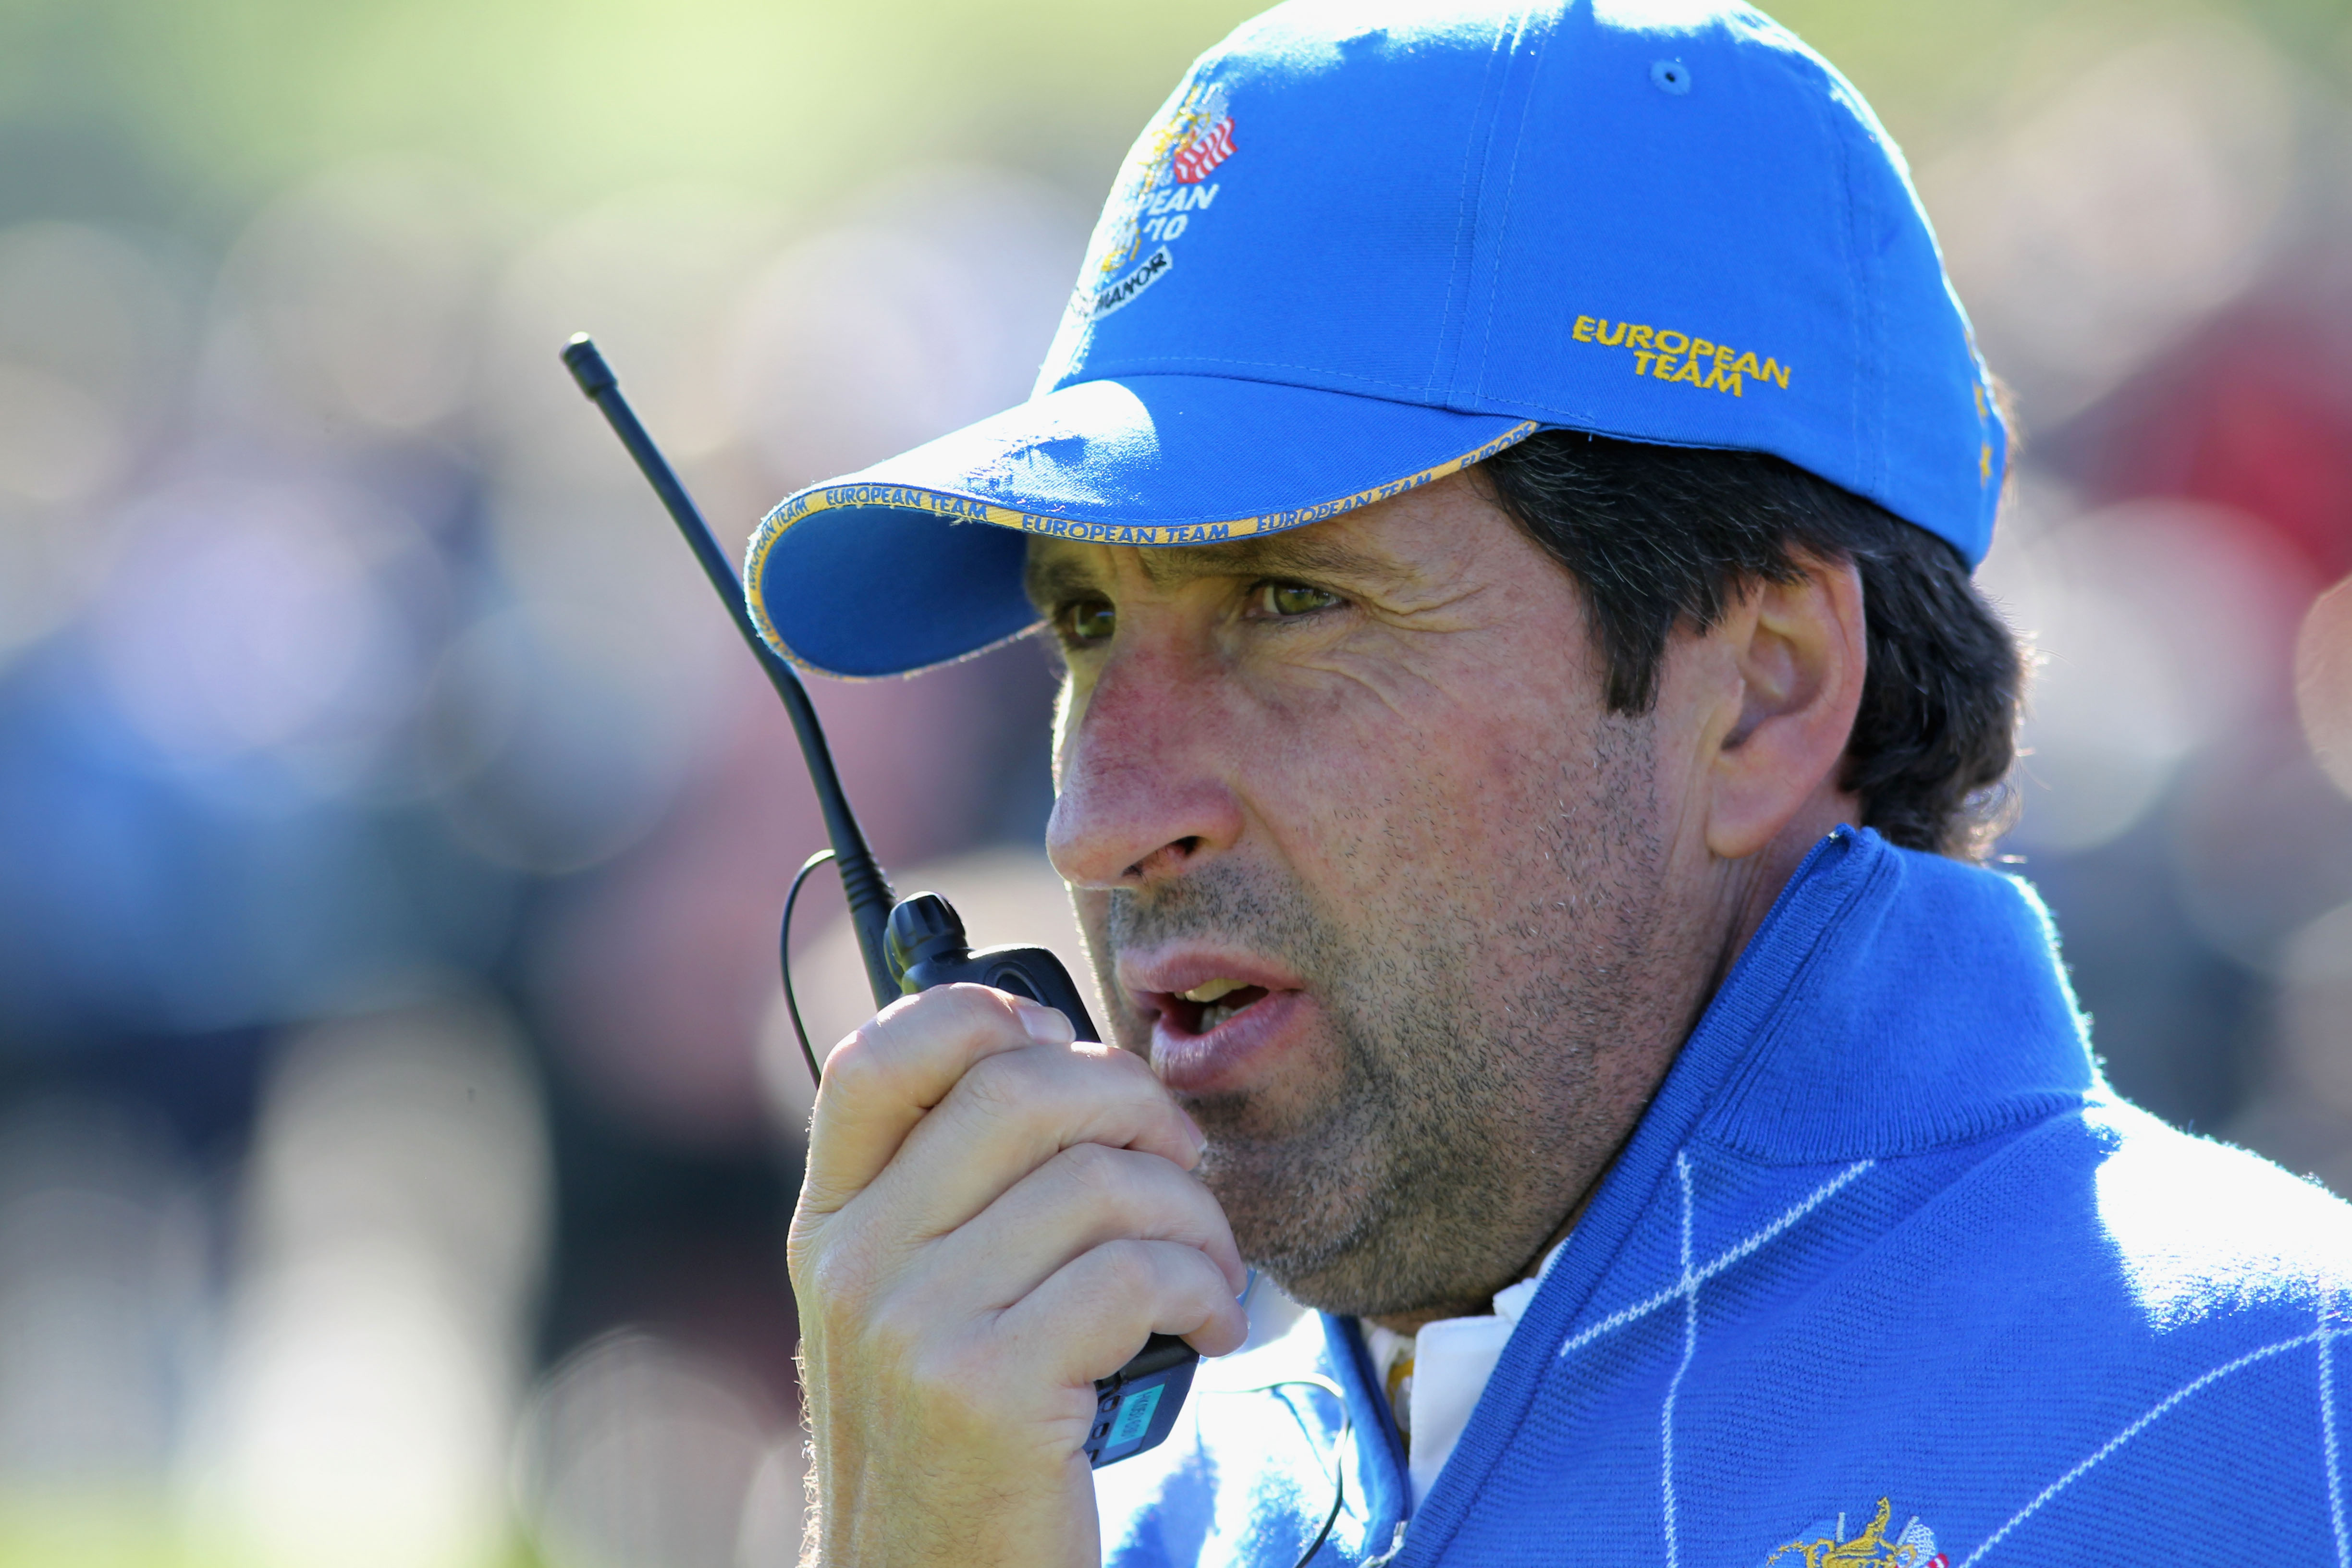 NEWPORT, WALES - OCTOBER 04:  Europe Vice Captain Jose-Maria Olazabal talks on a radio in the singles matches during the 2010 Ryder Cup at the Celtic Manor Resort on October 4, 2010 in Newport, Wales.  (Photo by Jamie Squire/Getty Images)